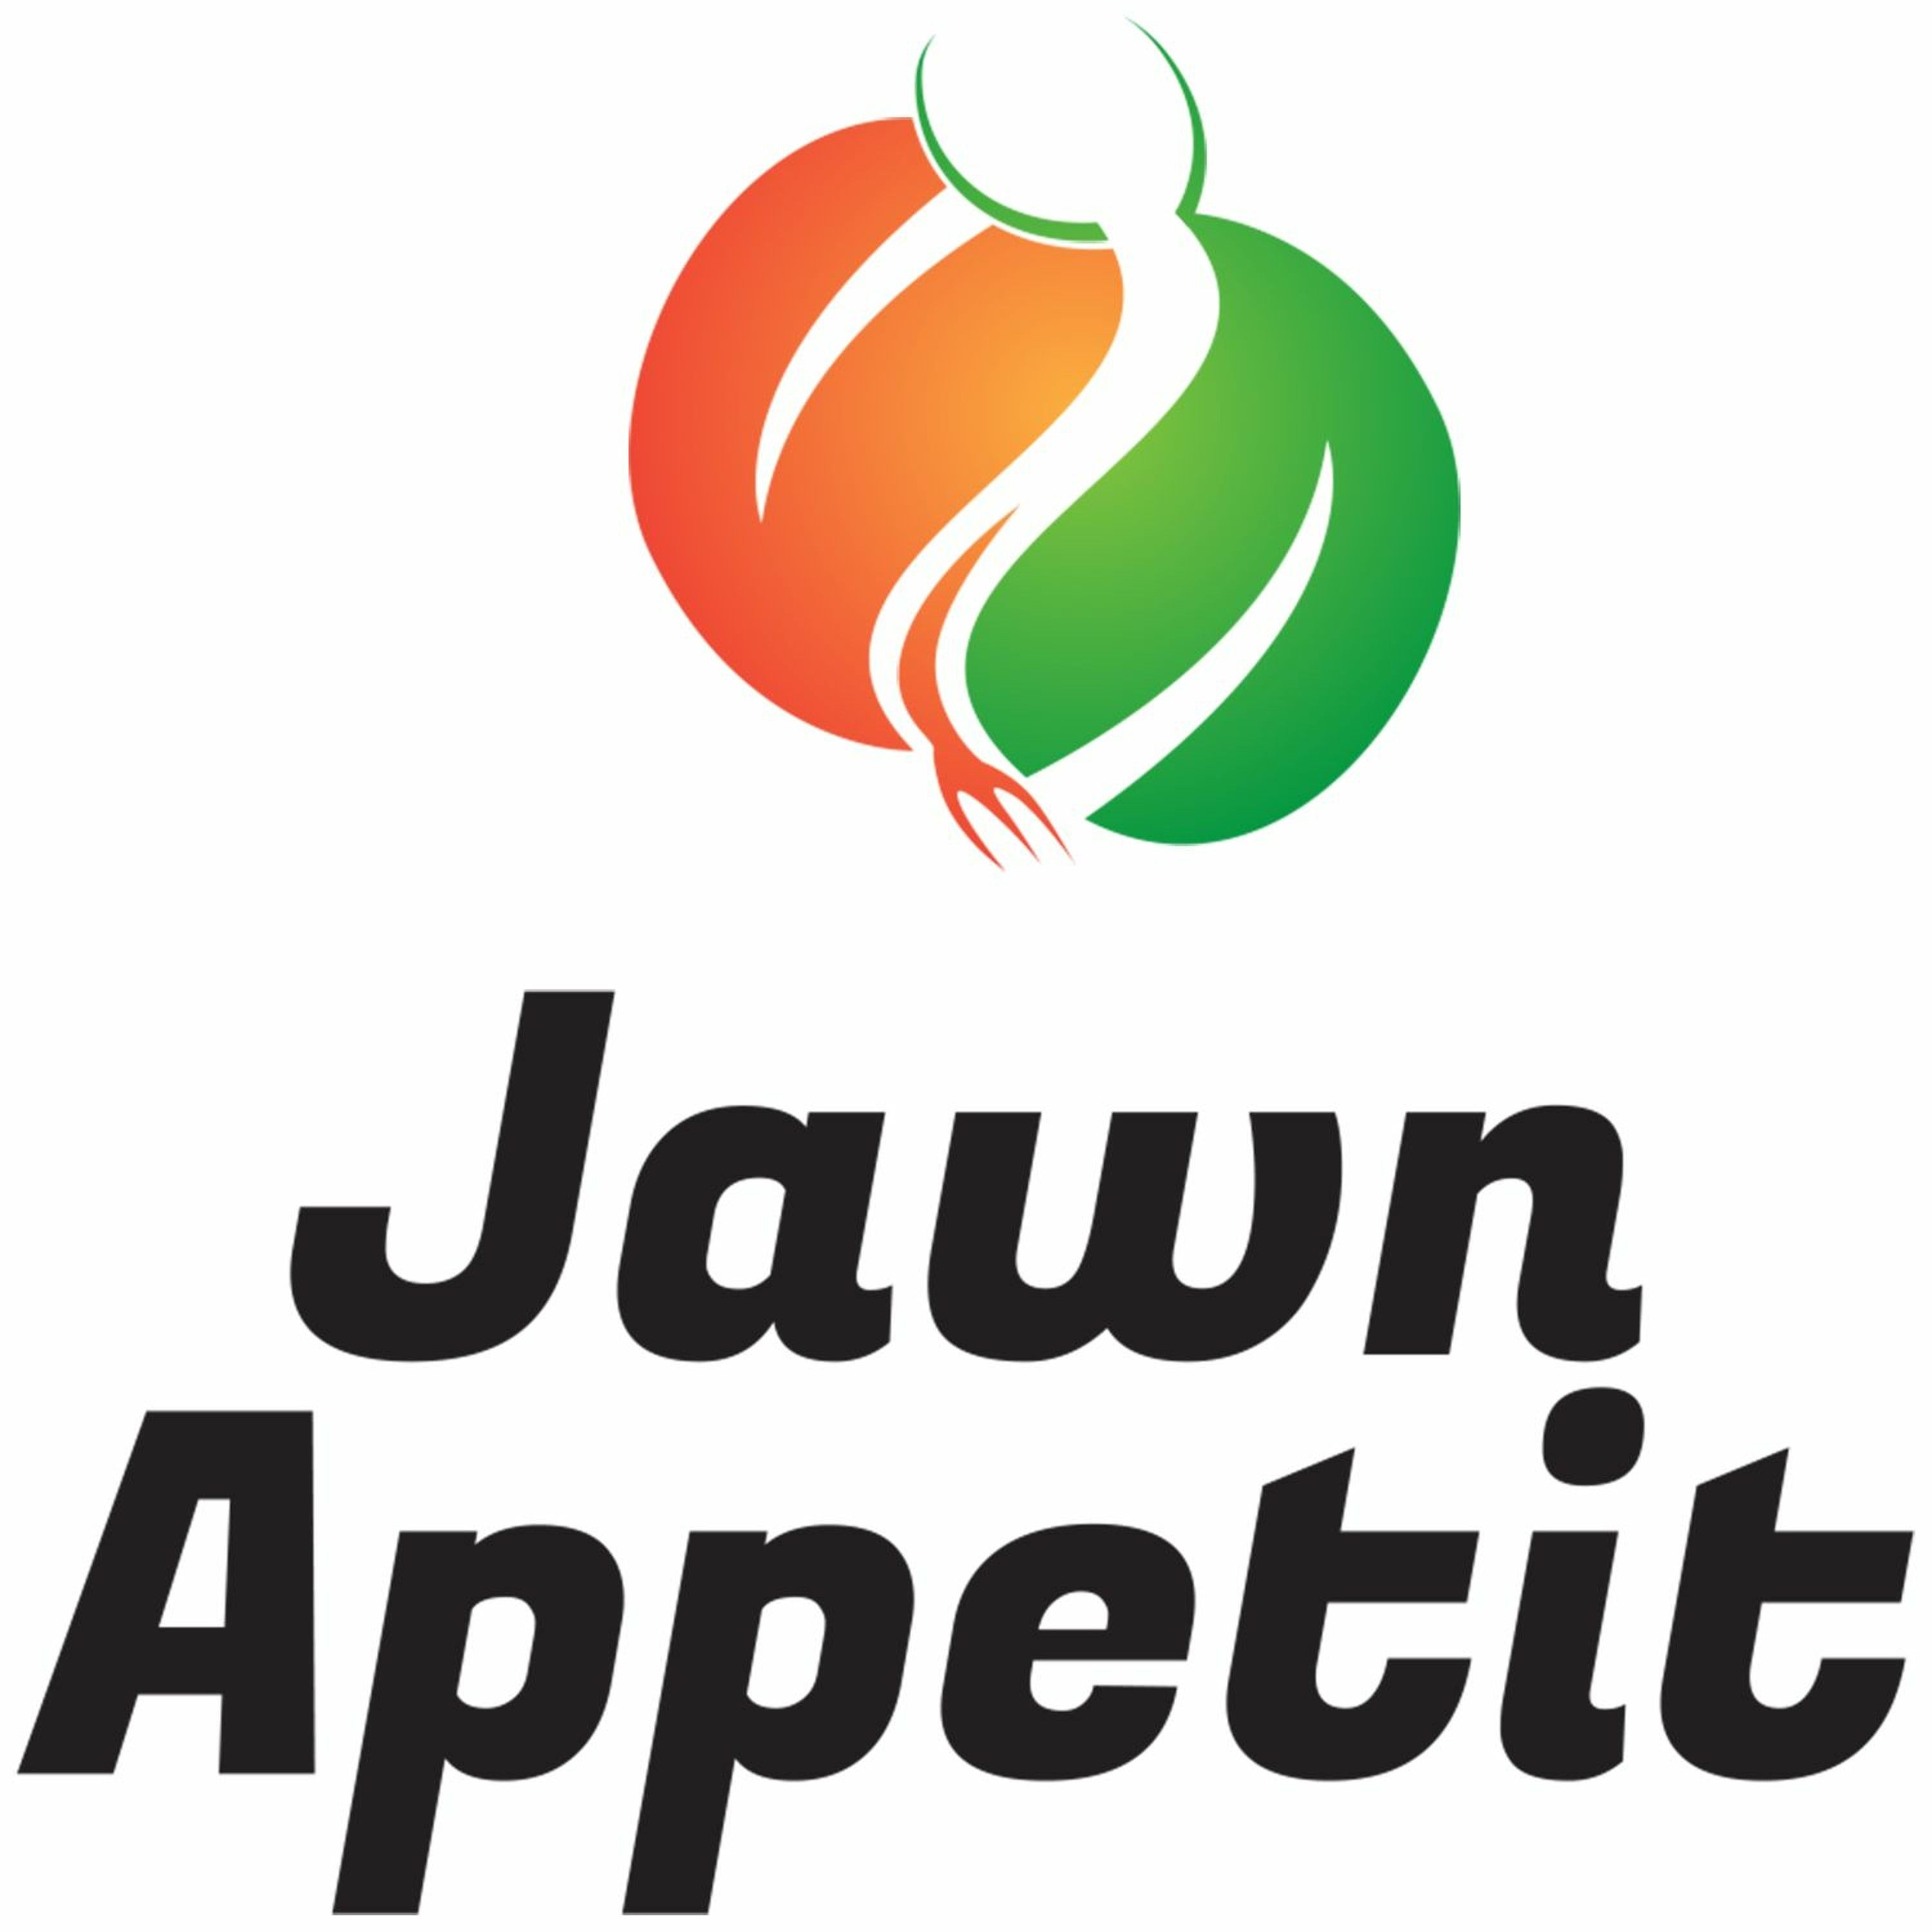 Jawn Appetit - Episode 175 - Giuseppe Market / Samuels and Sons